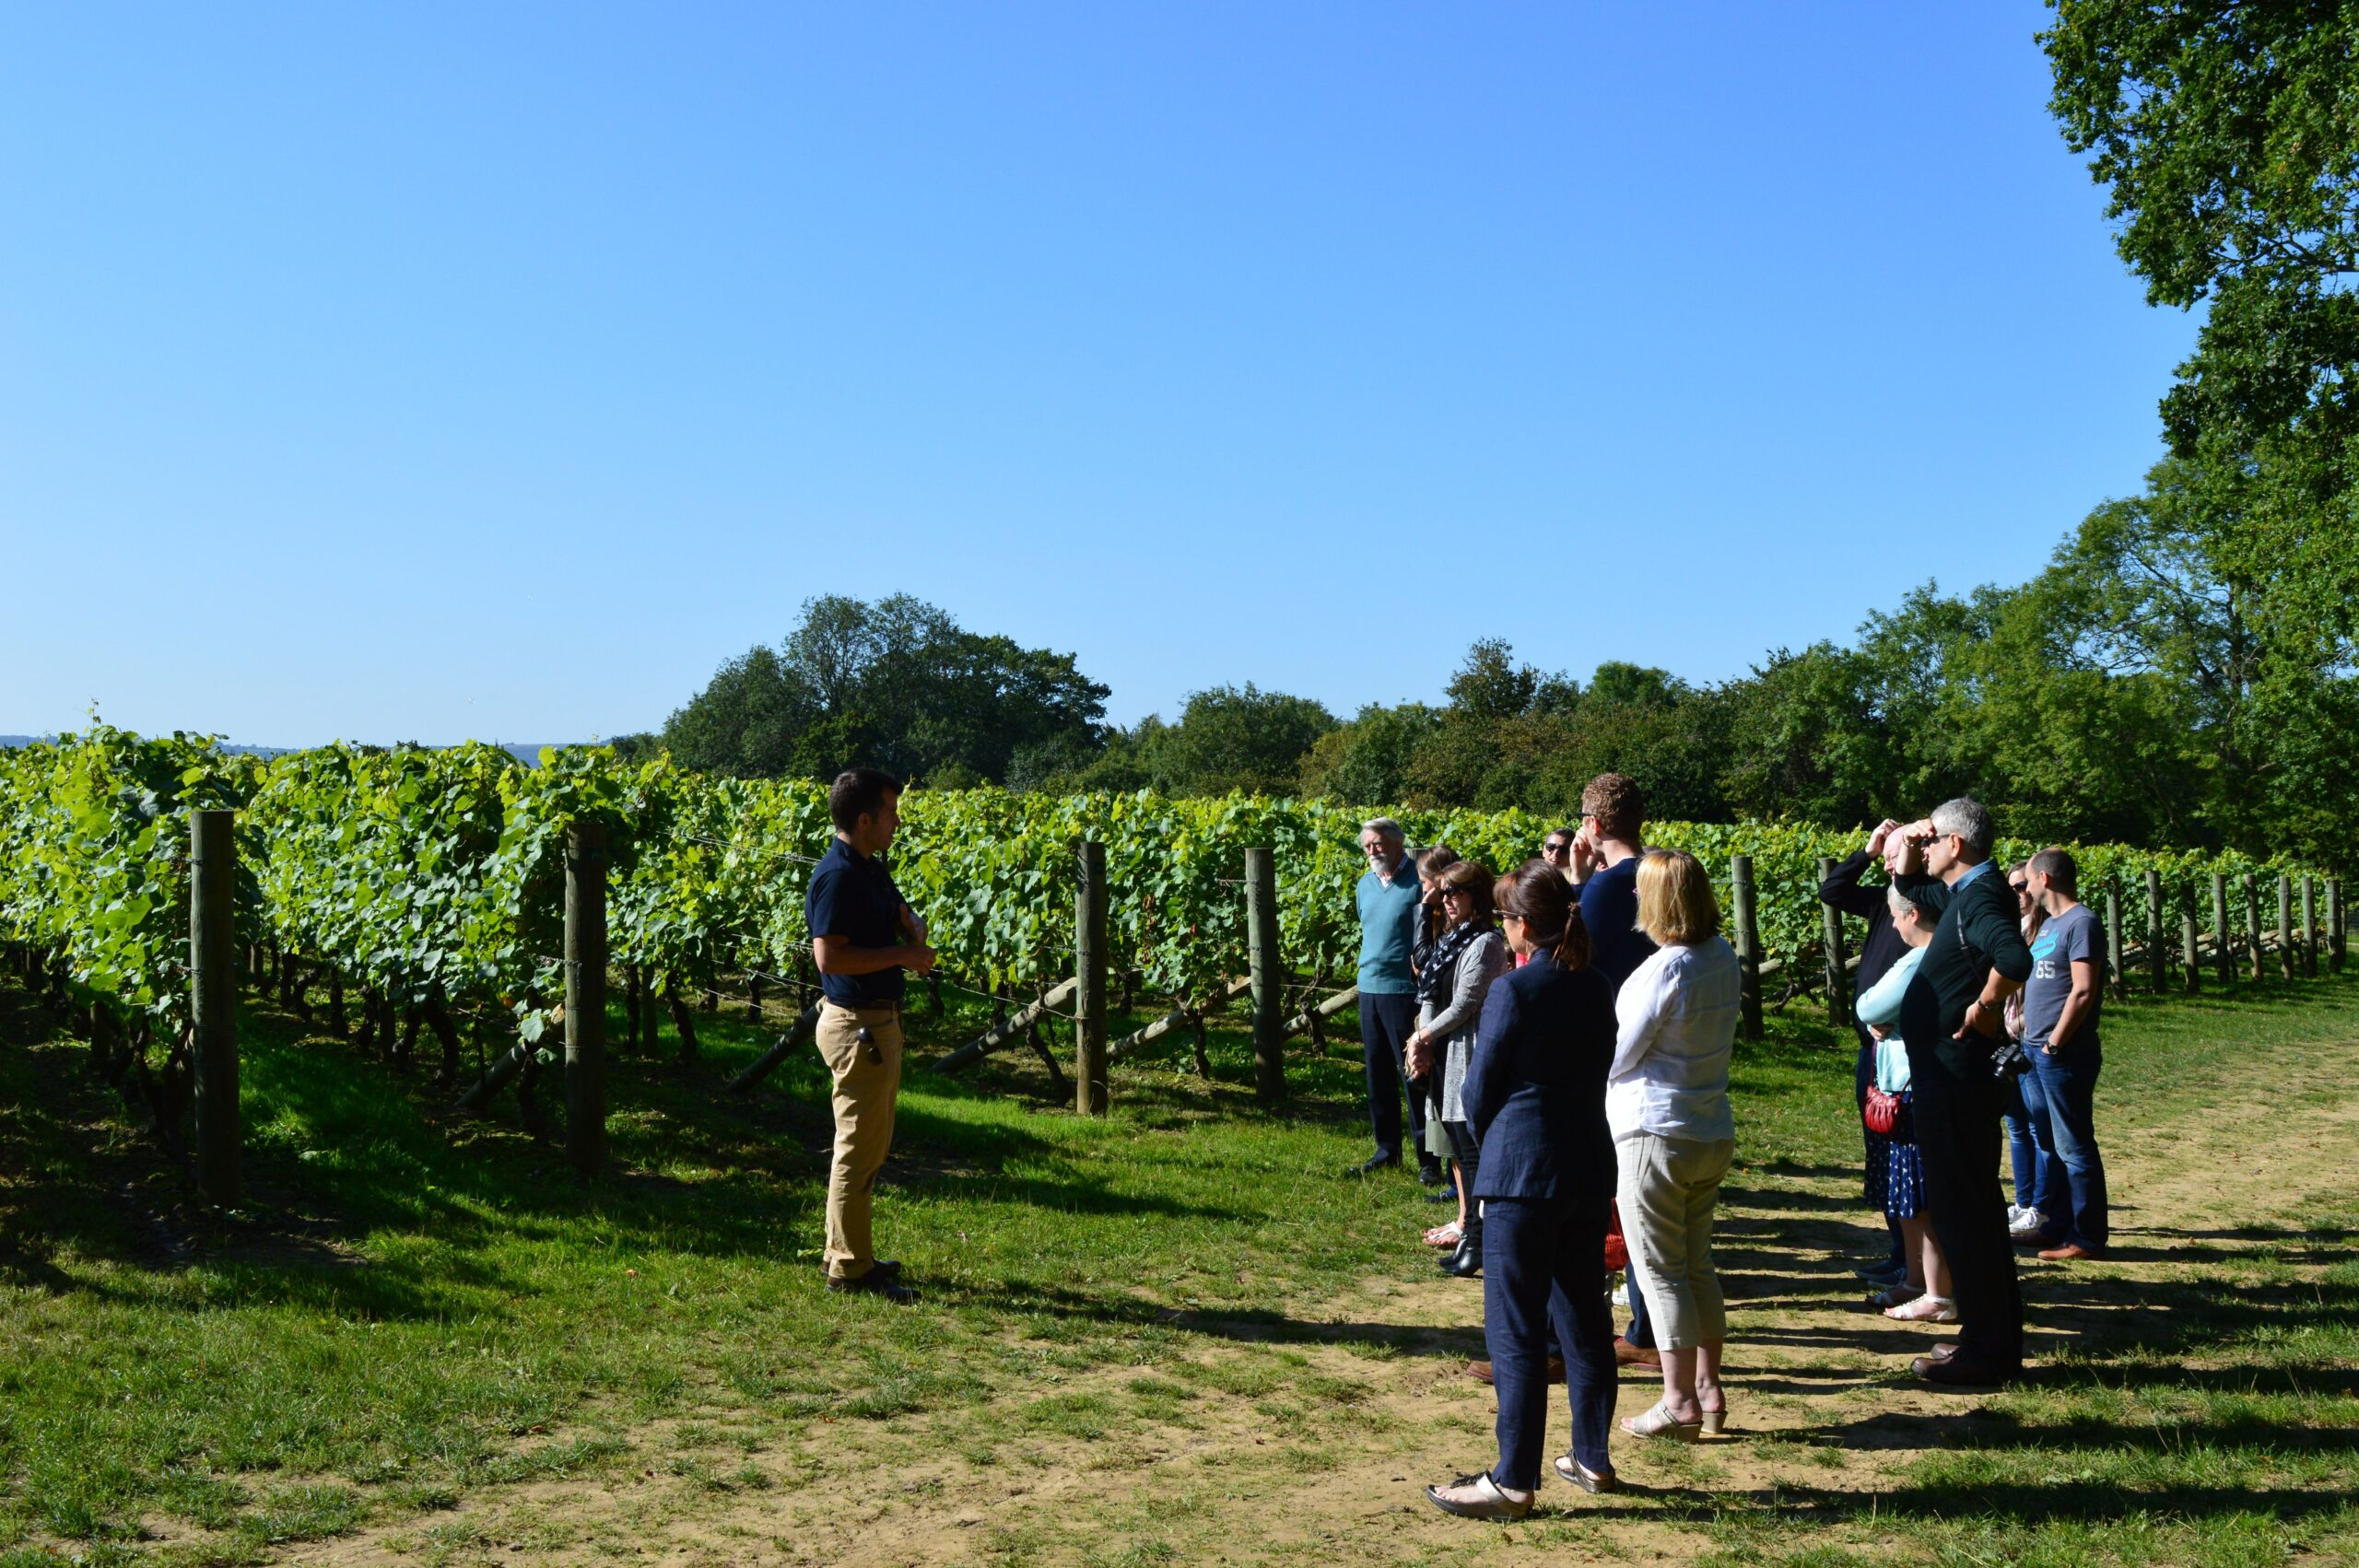 a small group of people listening to a talk in front of the vineyard fields